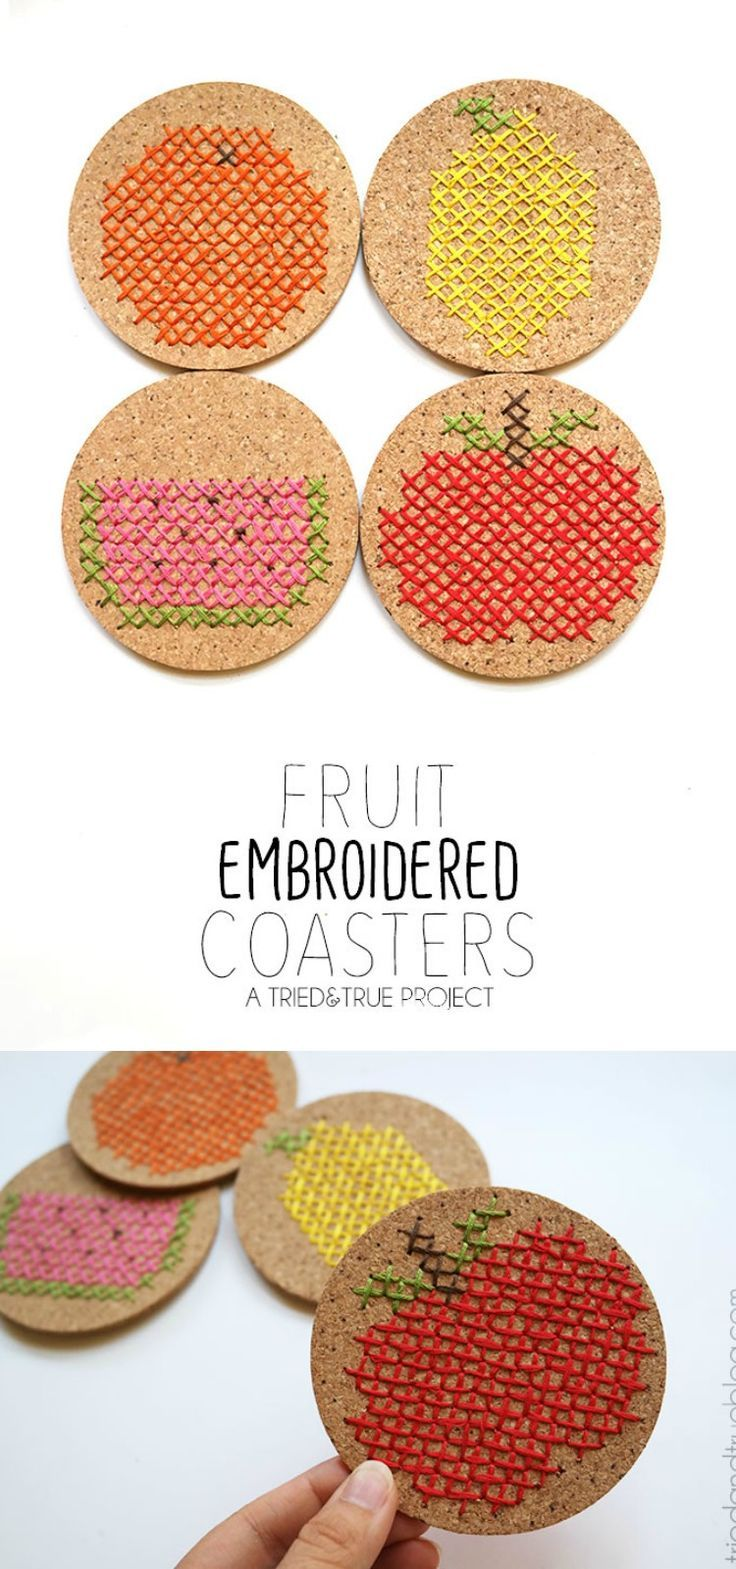 Everyone loves a good fruit project and a cute embroidery craft - the two come together in this DIY coasters project!